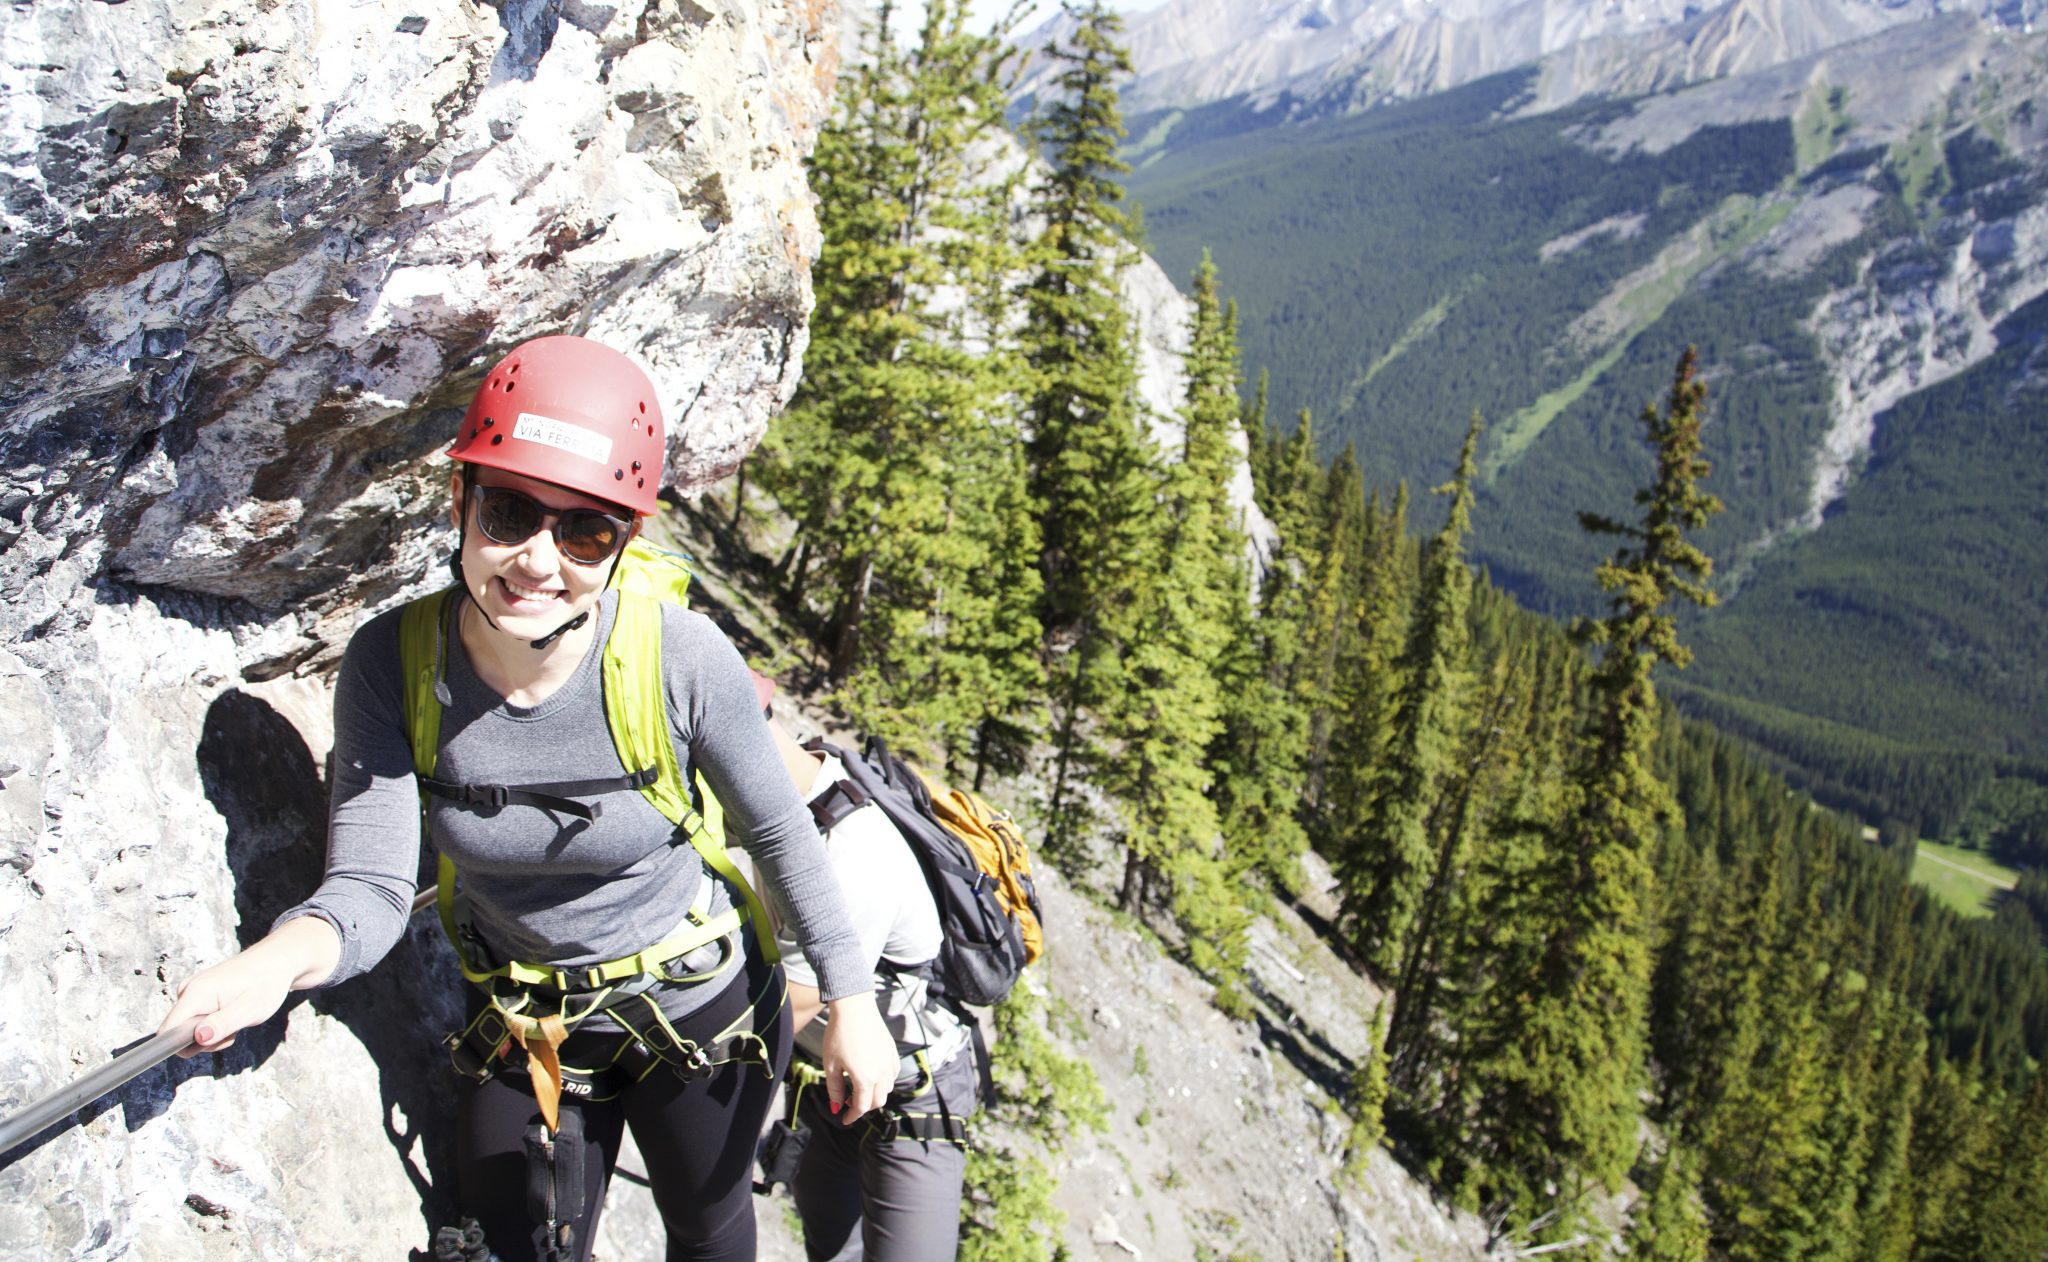 norquay_viaferrata_july2018_whitneyarnott_mg_0655